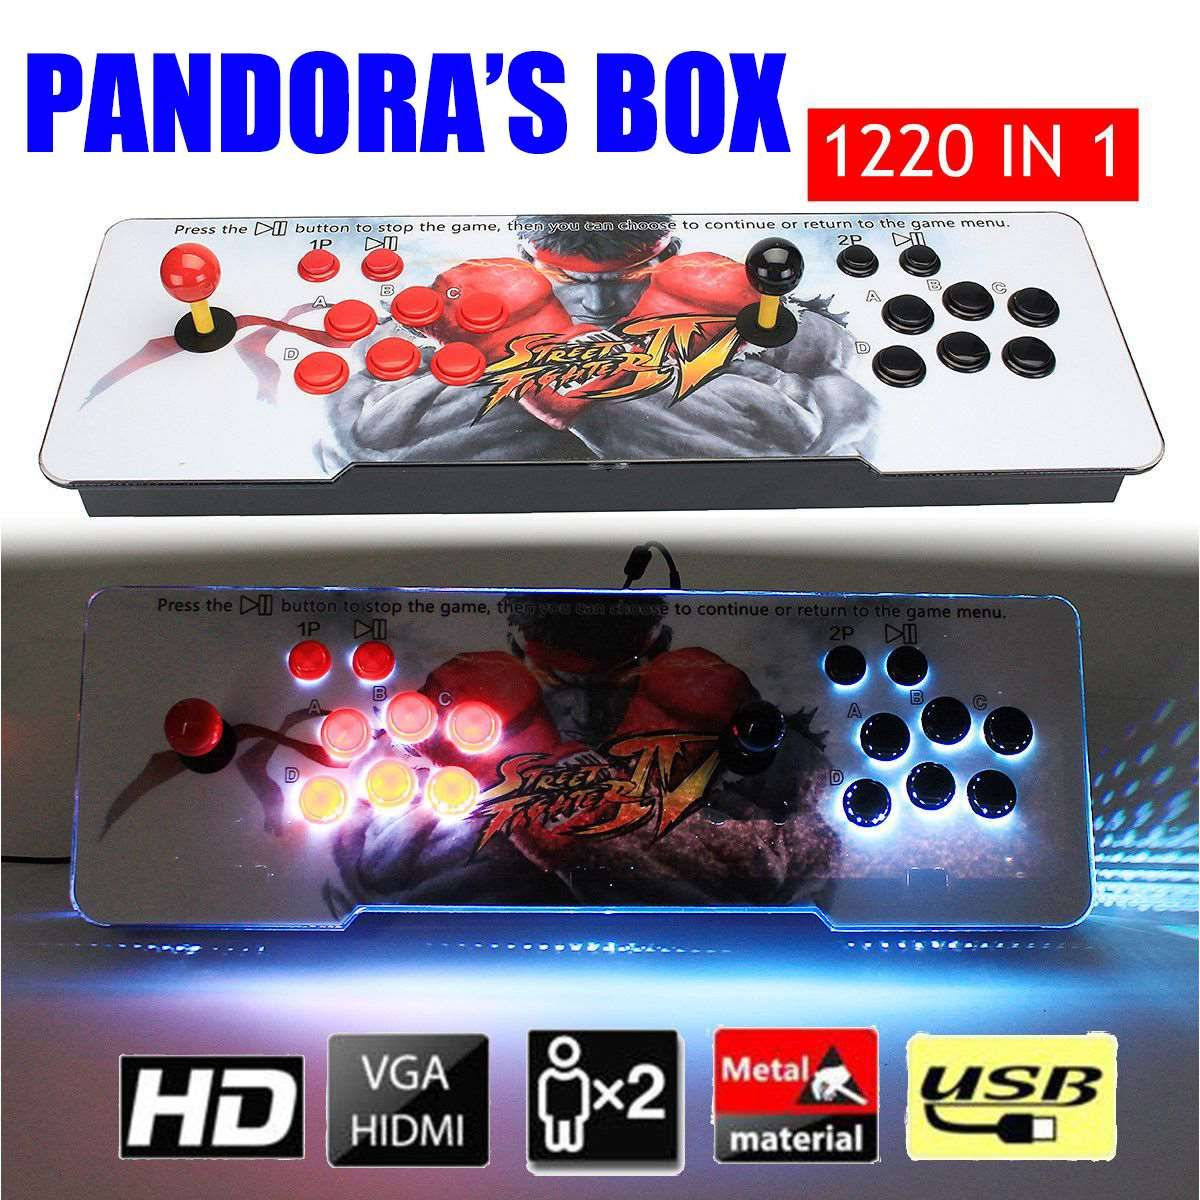 New 1220 in 1 Pandora's Box 5S Arcade Console Double Stick Retro Video Game LED Lamp Best Gift For Children